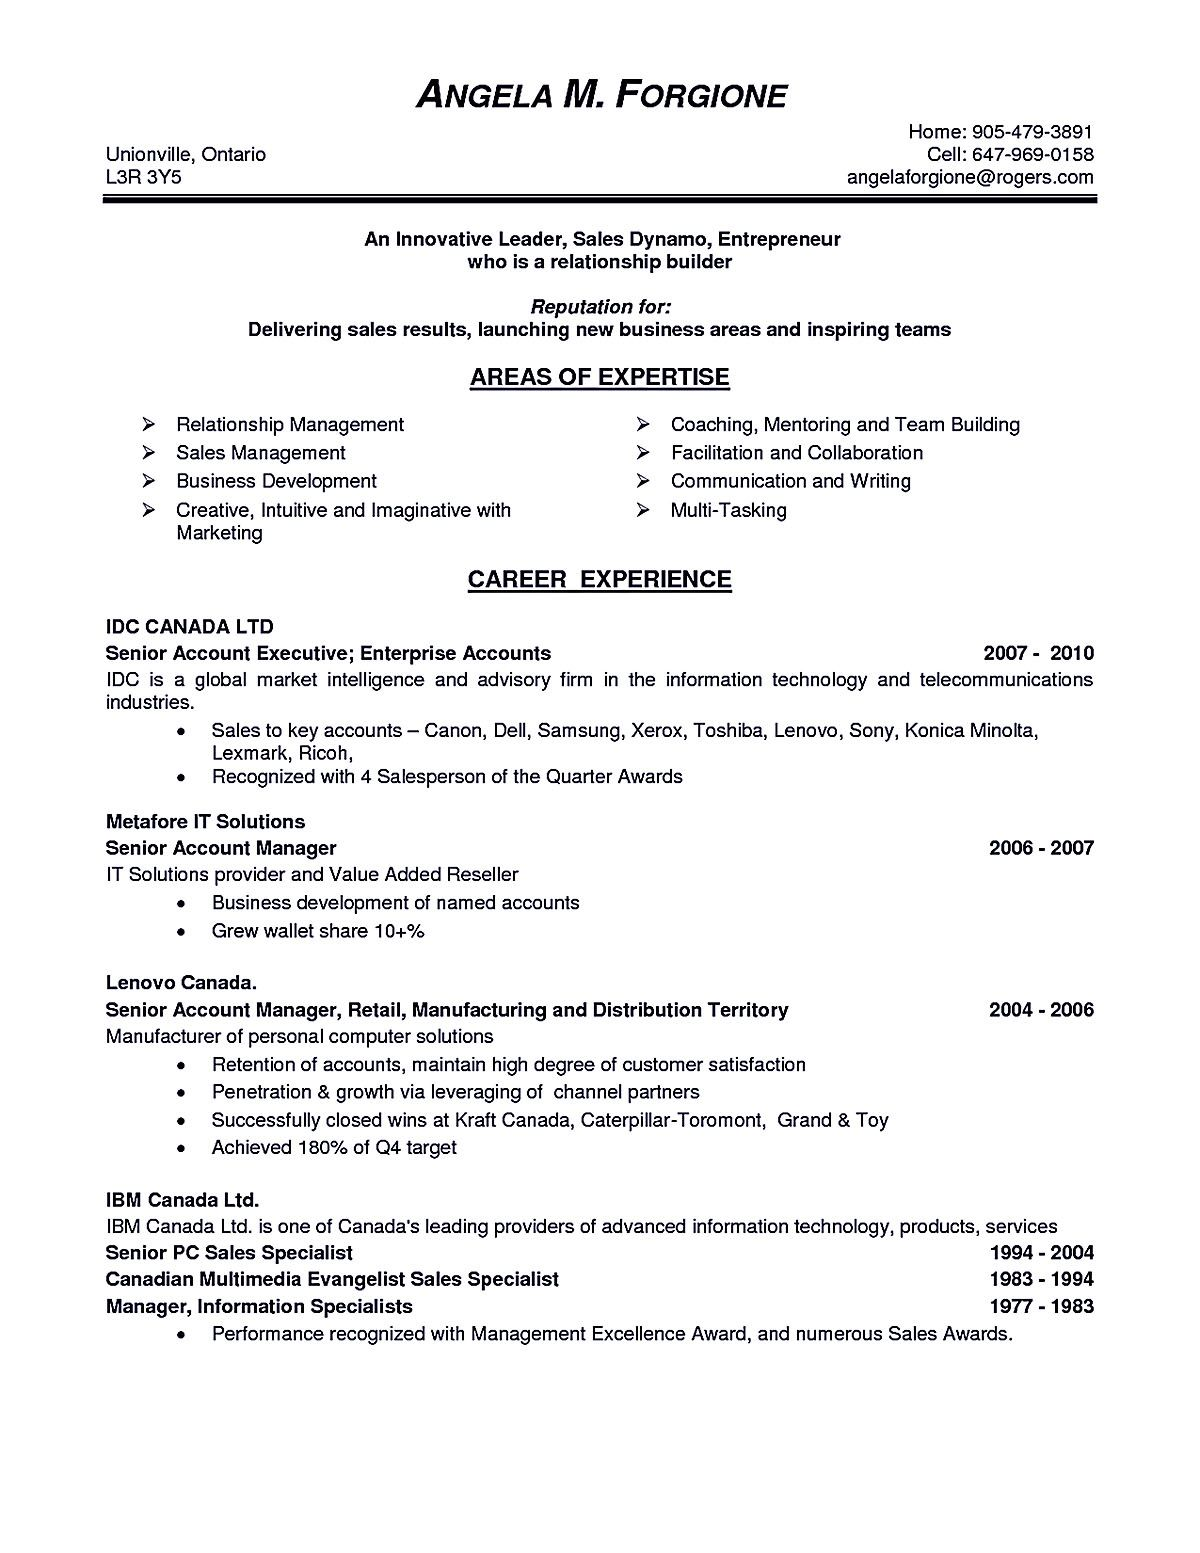 Account Executive Resume Is Like Your Weapon To Get The Job You Want Related To The Account Executive Position Executive Resume Account Executive Sample Resume